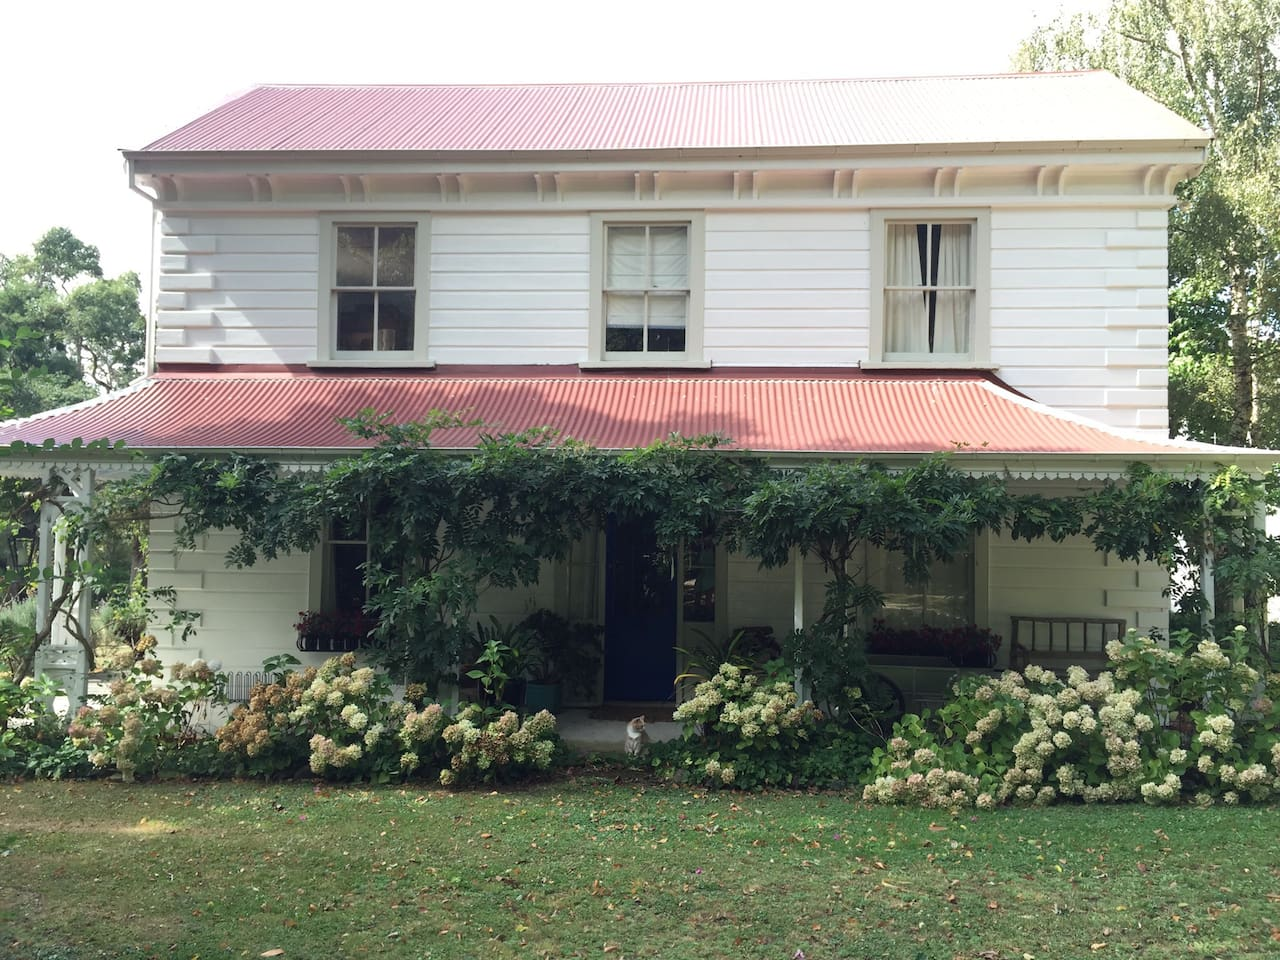 Te Puhi, the old house, built in 1868.